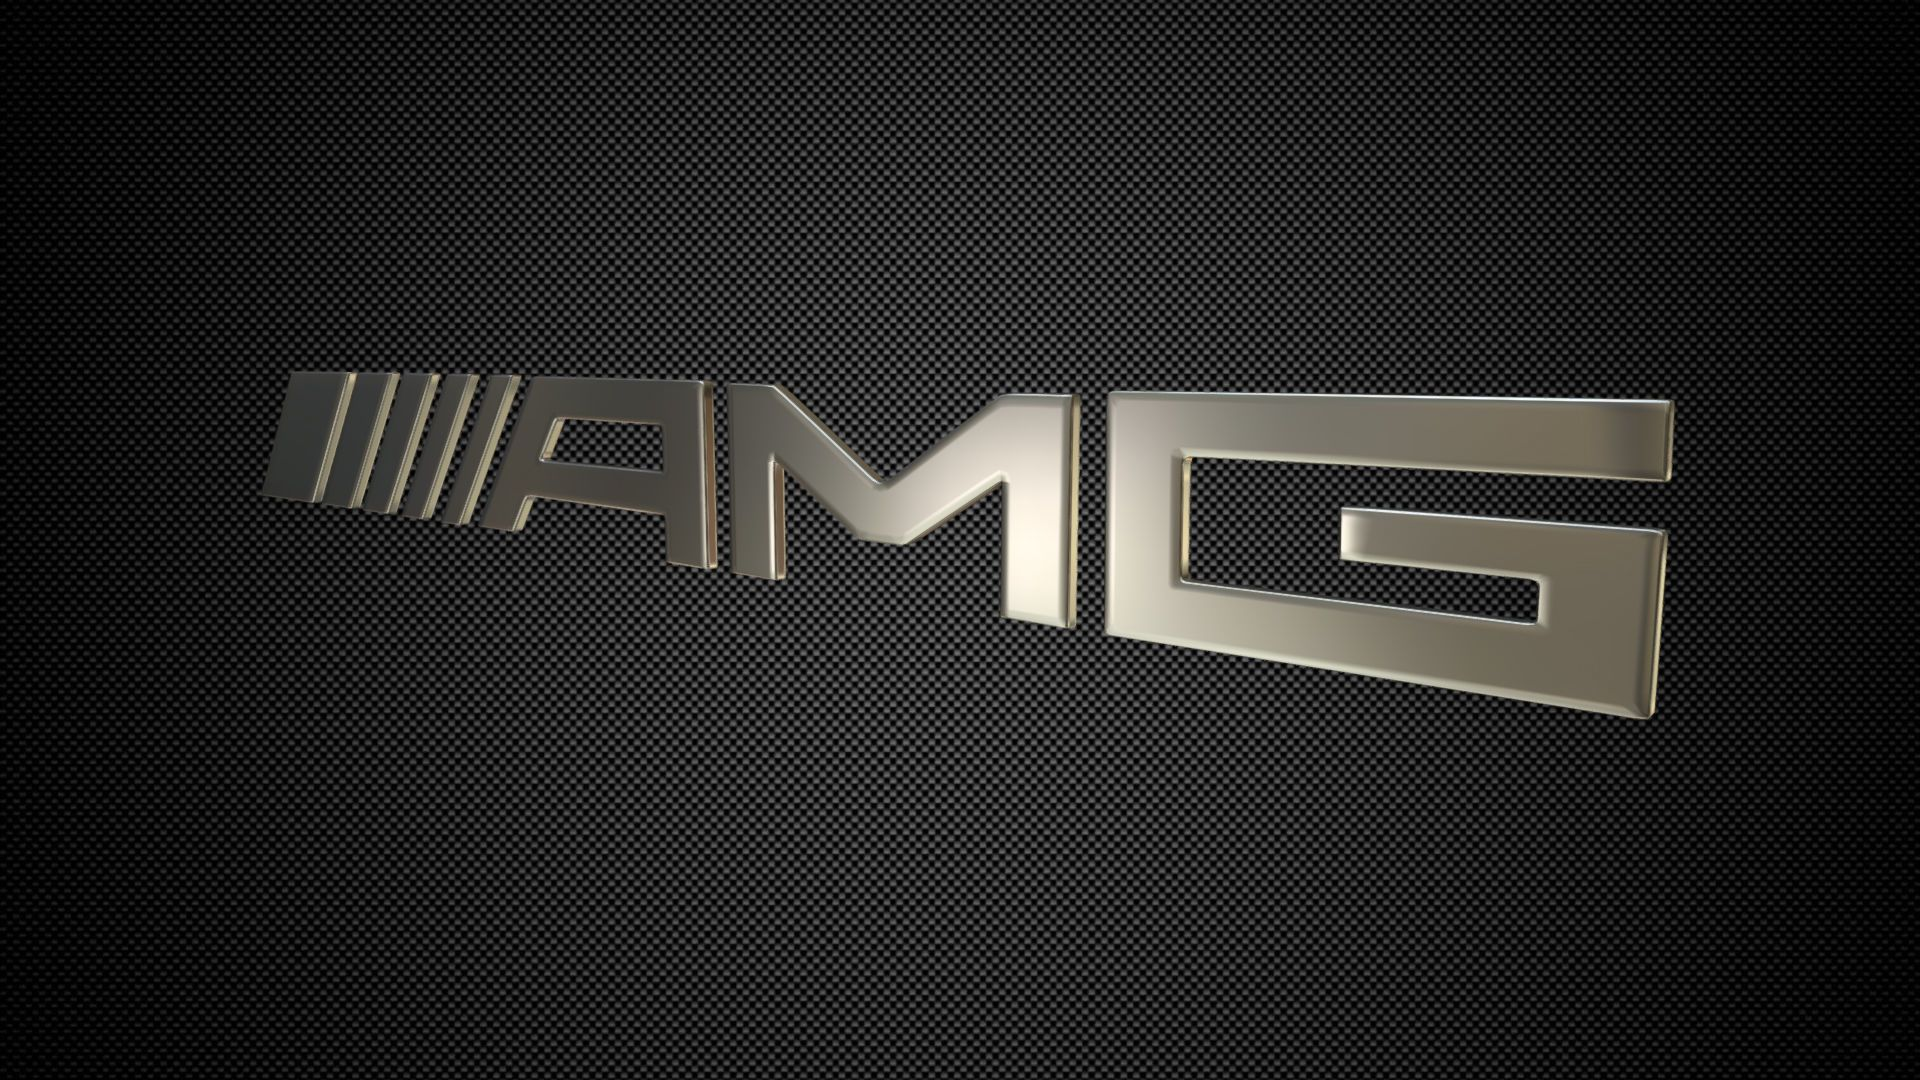 Amg Logo Wallpaper Hd In 2020 With Images